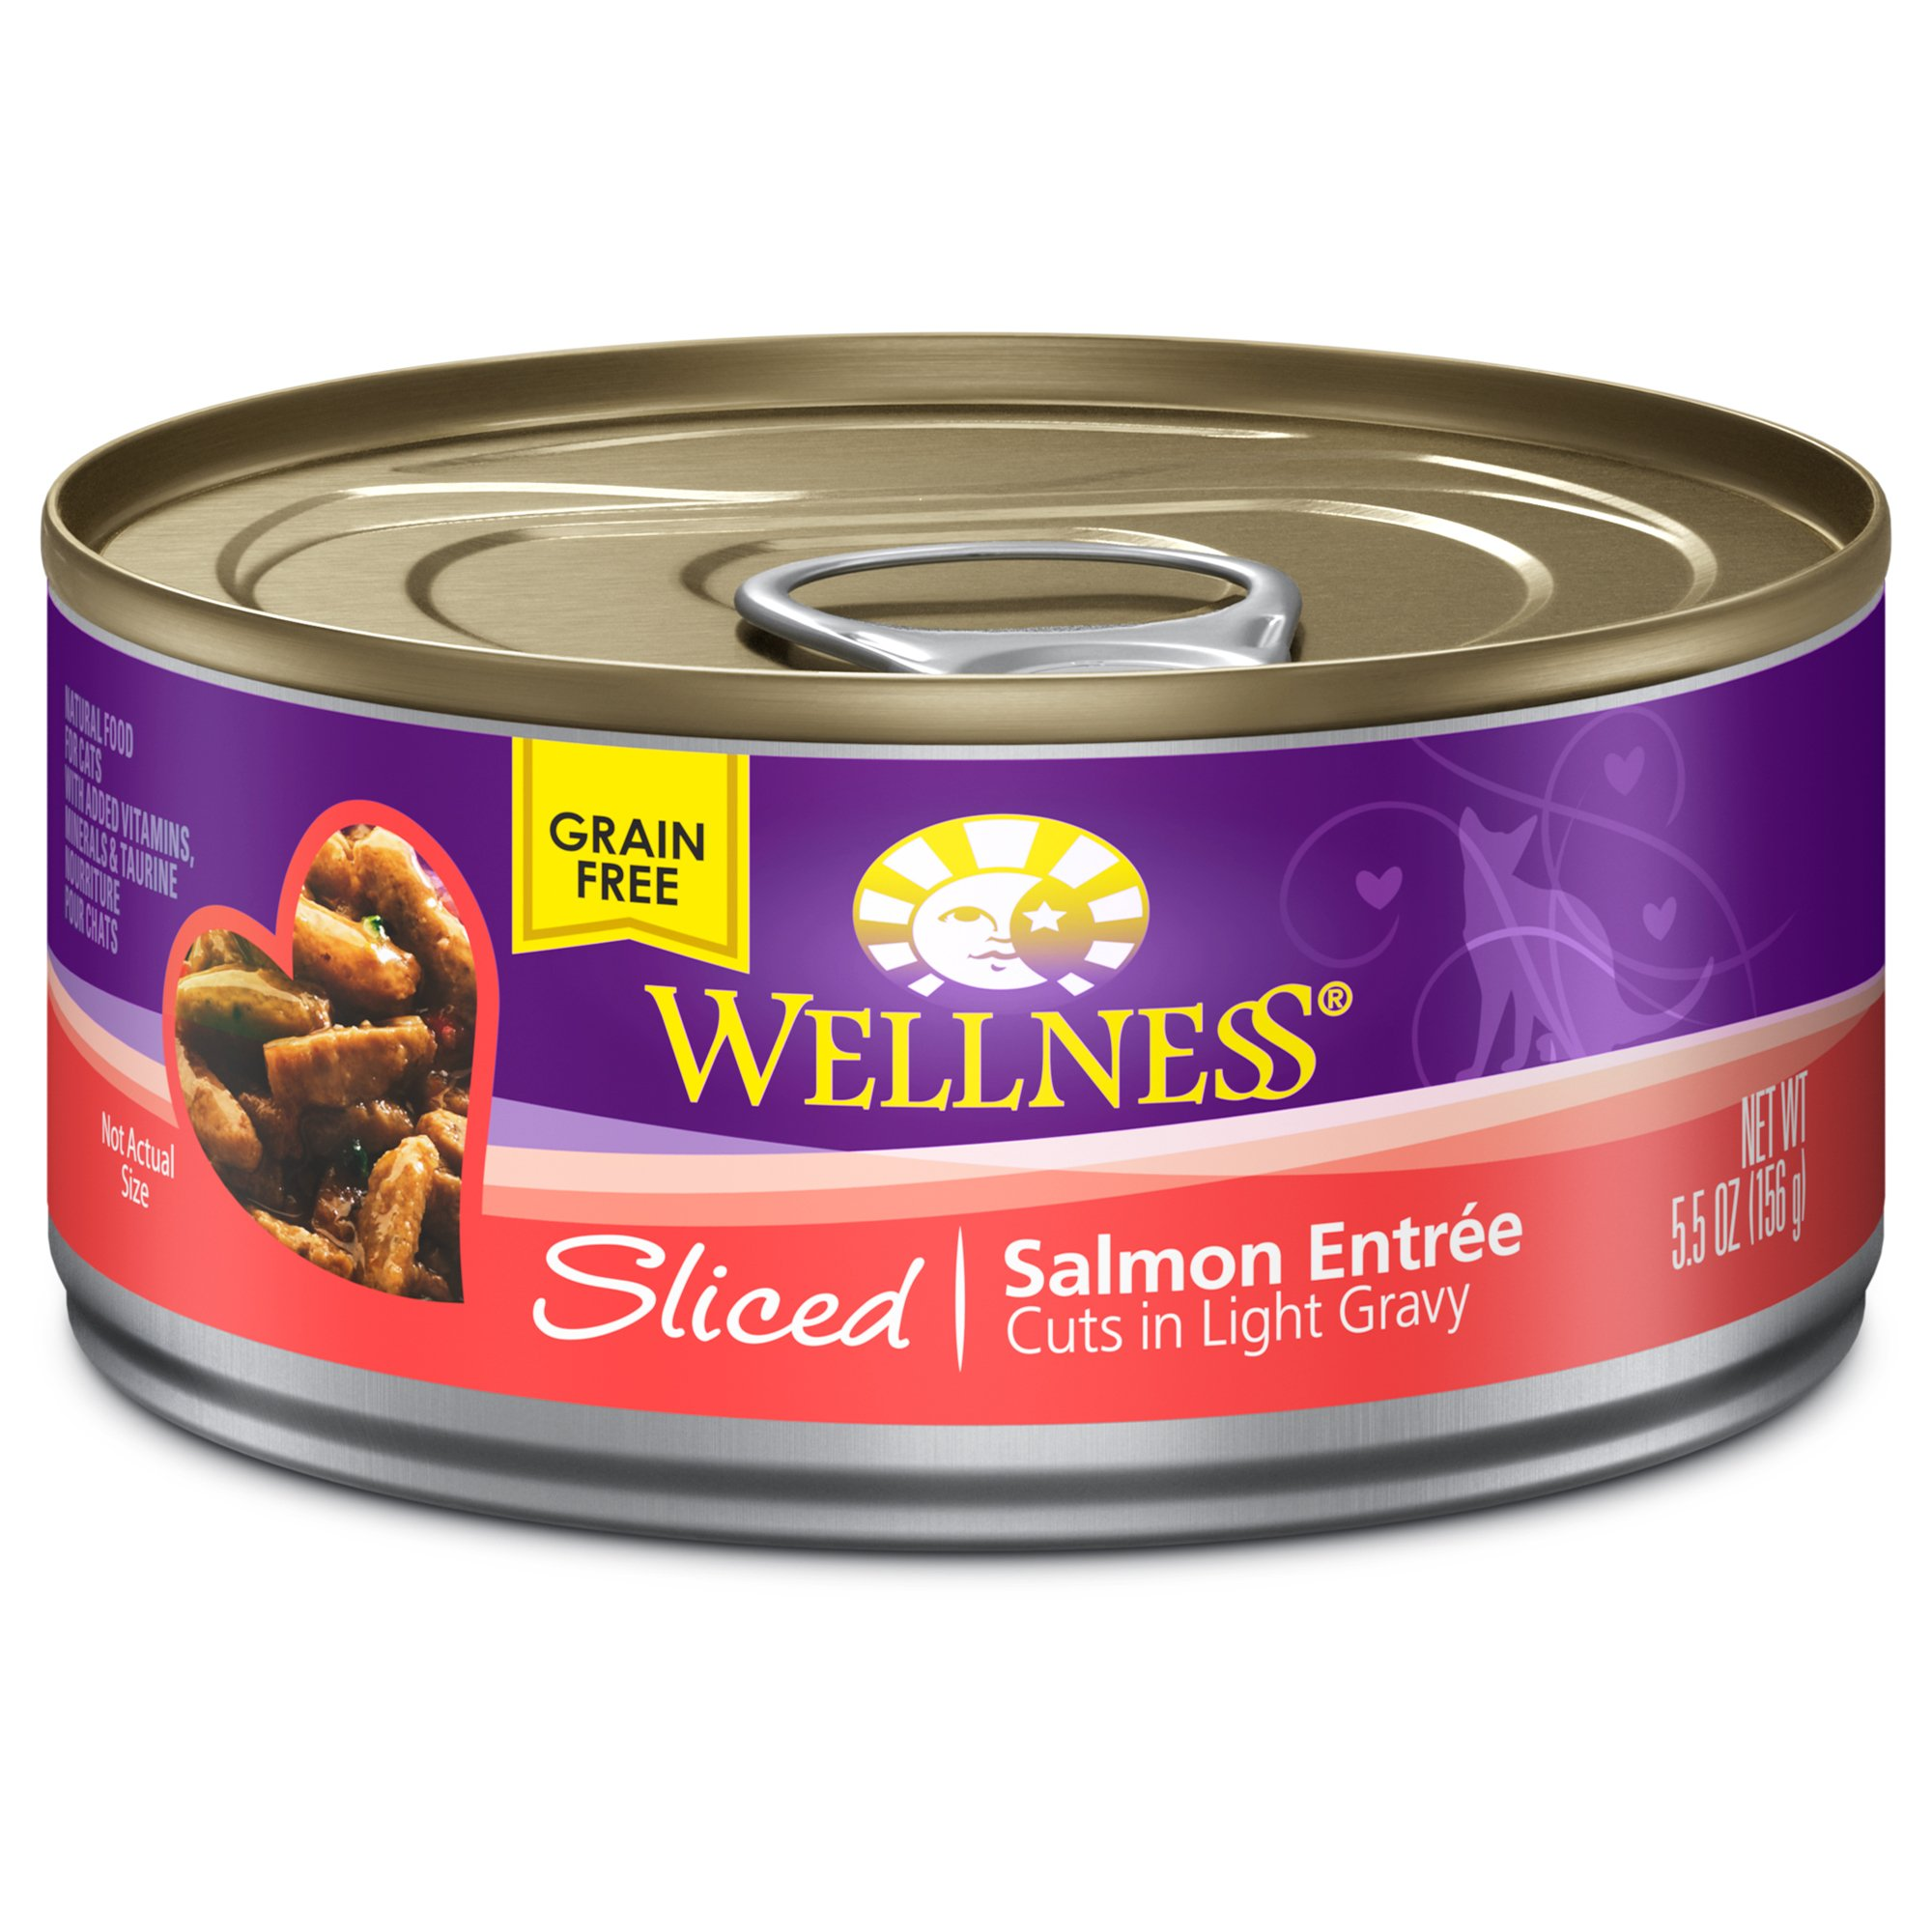 Wellness Sliced Cuts Adult Canned Cat Food, Salmon